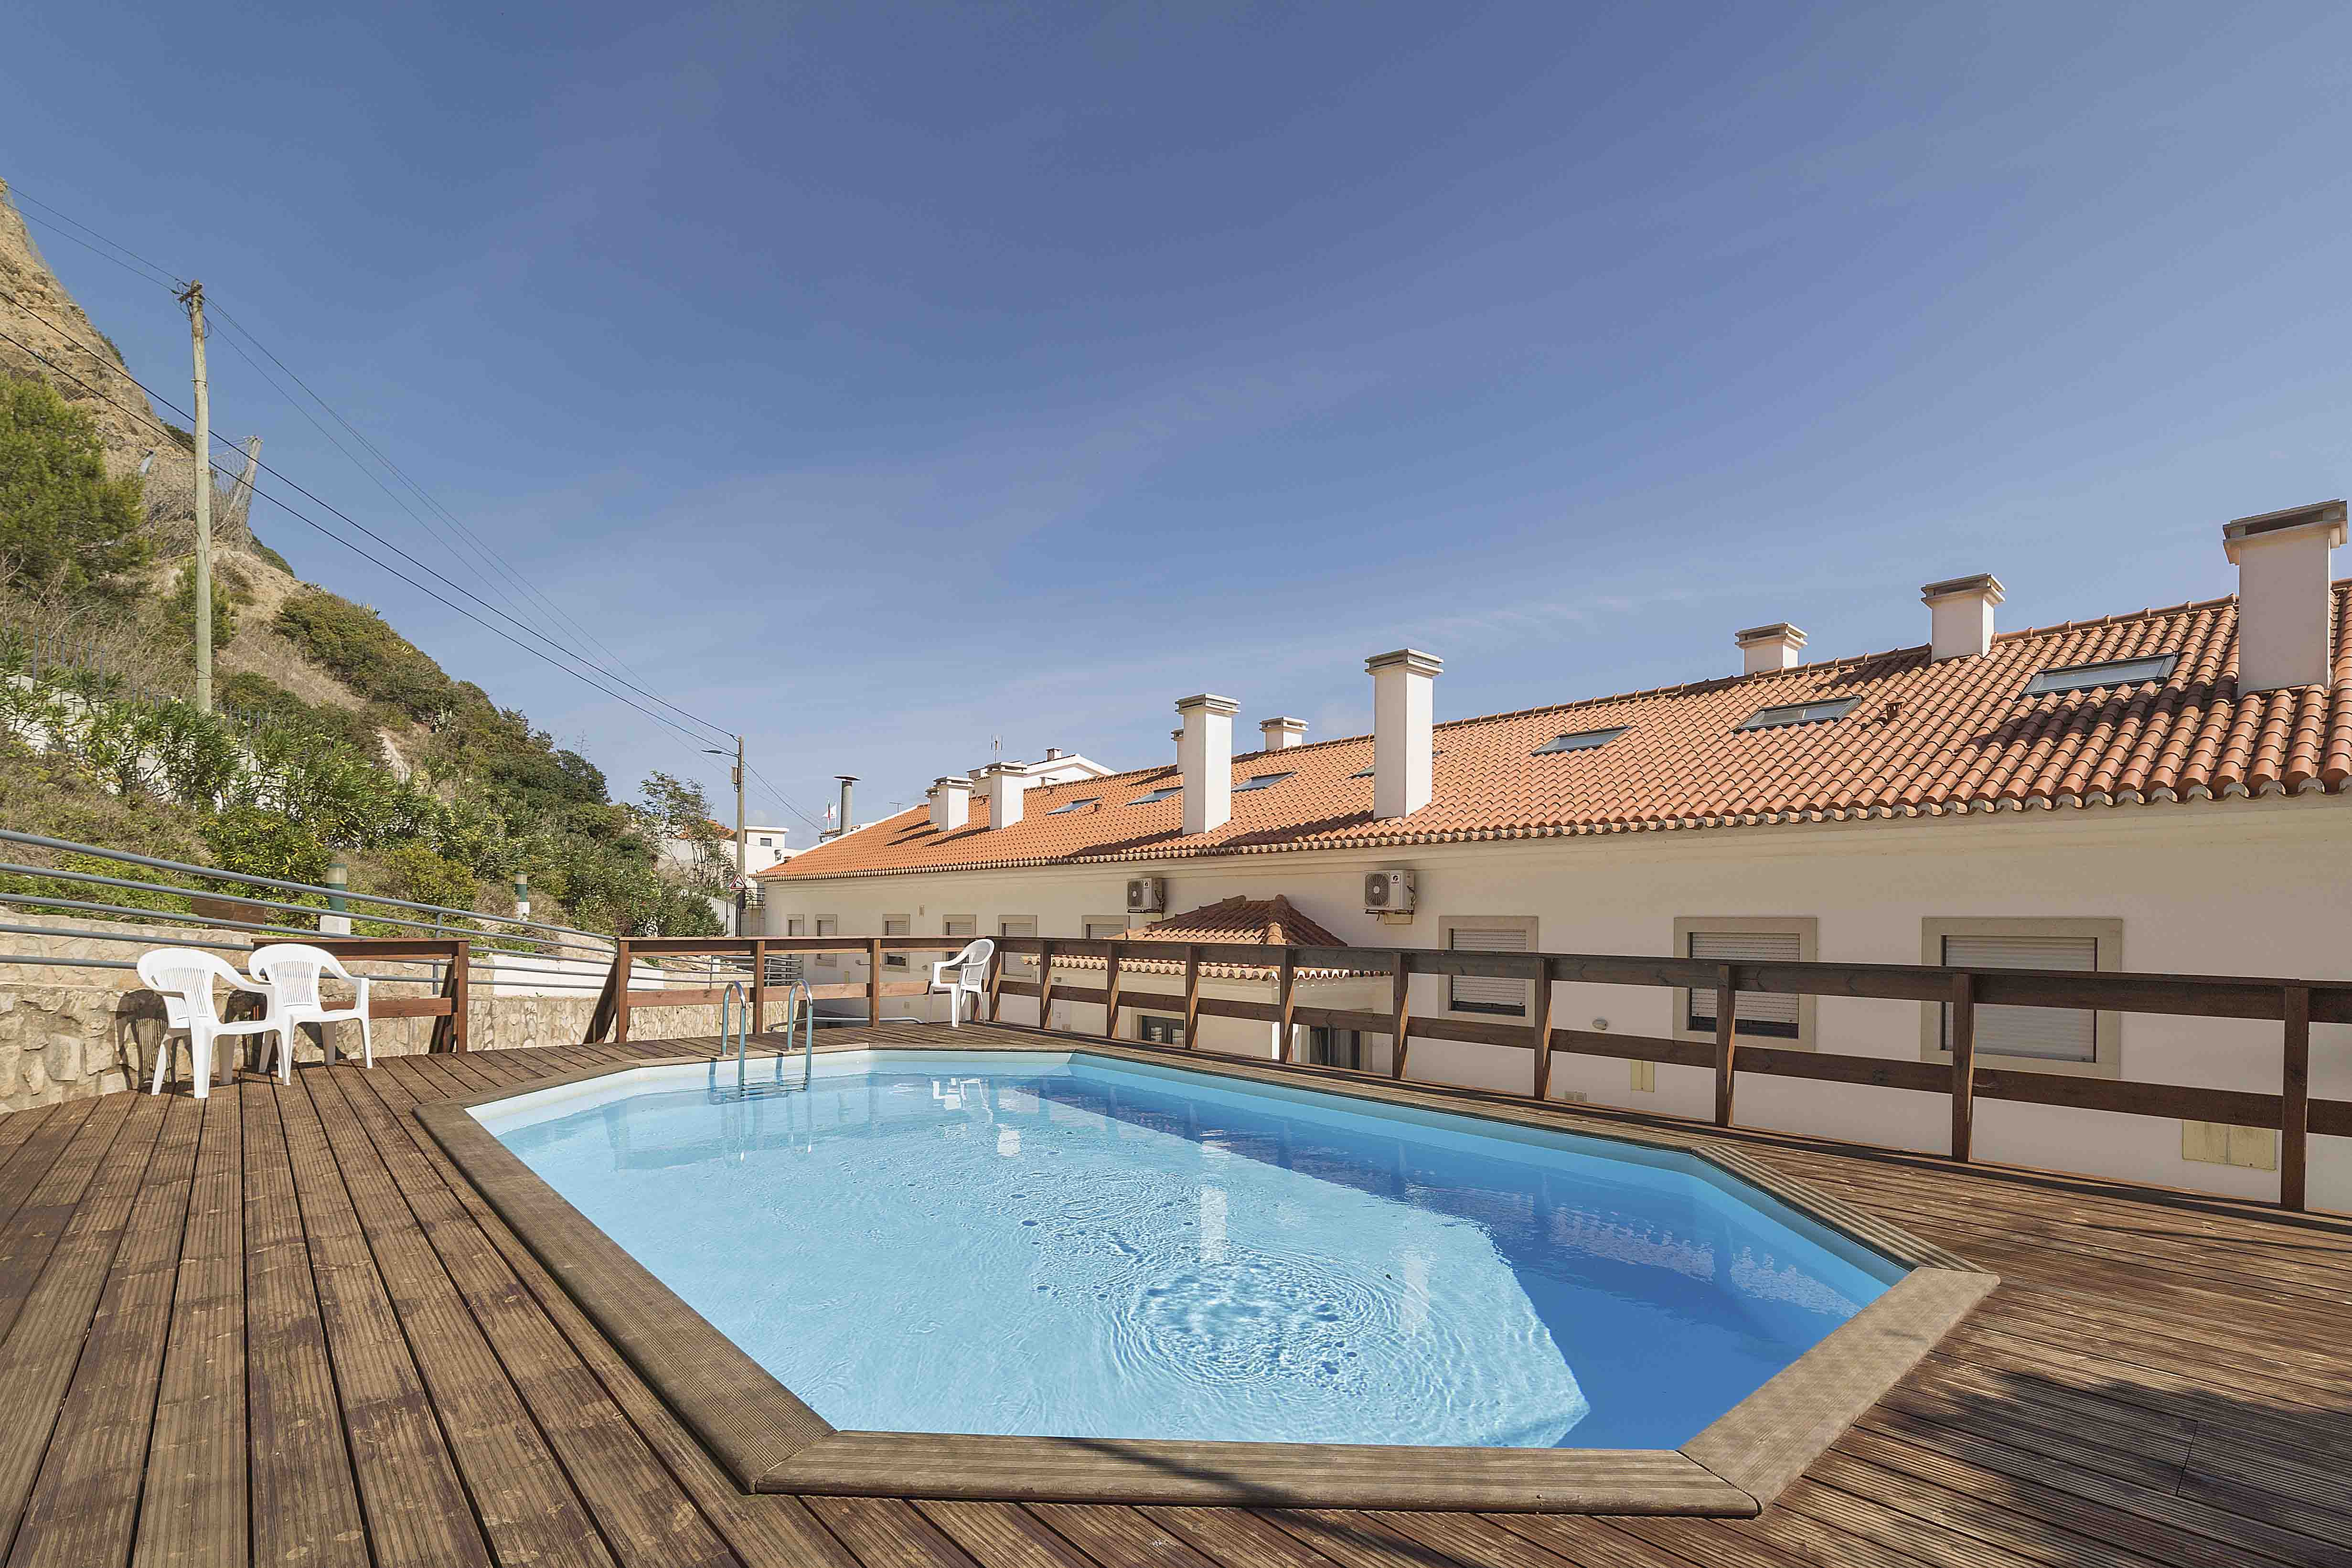 20-cais-sao-martinho-porto-silver-coast-new-buil-construction-portugal-for-sale